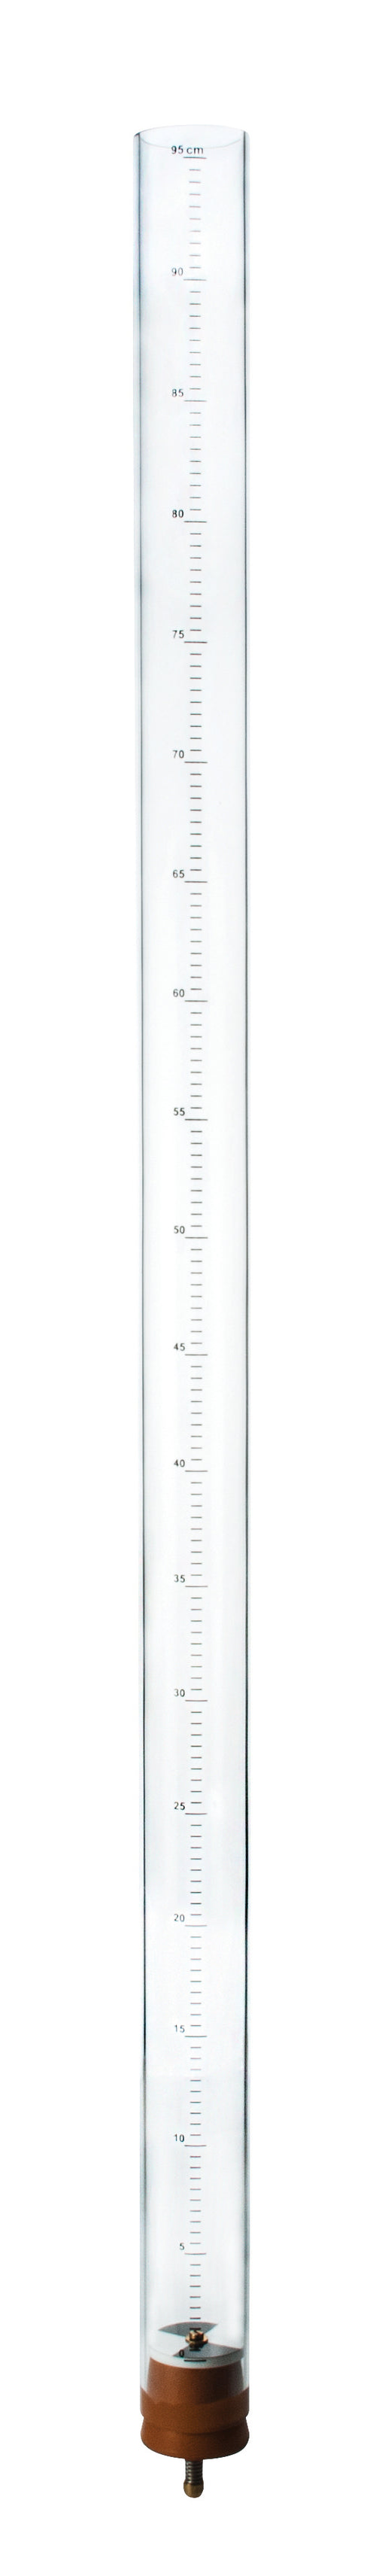 Eisco Transparent Turbidity Tube - 1m